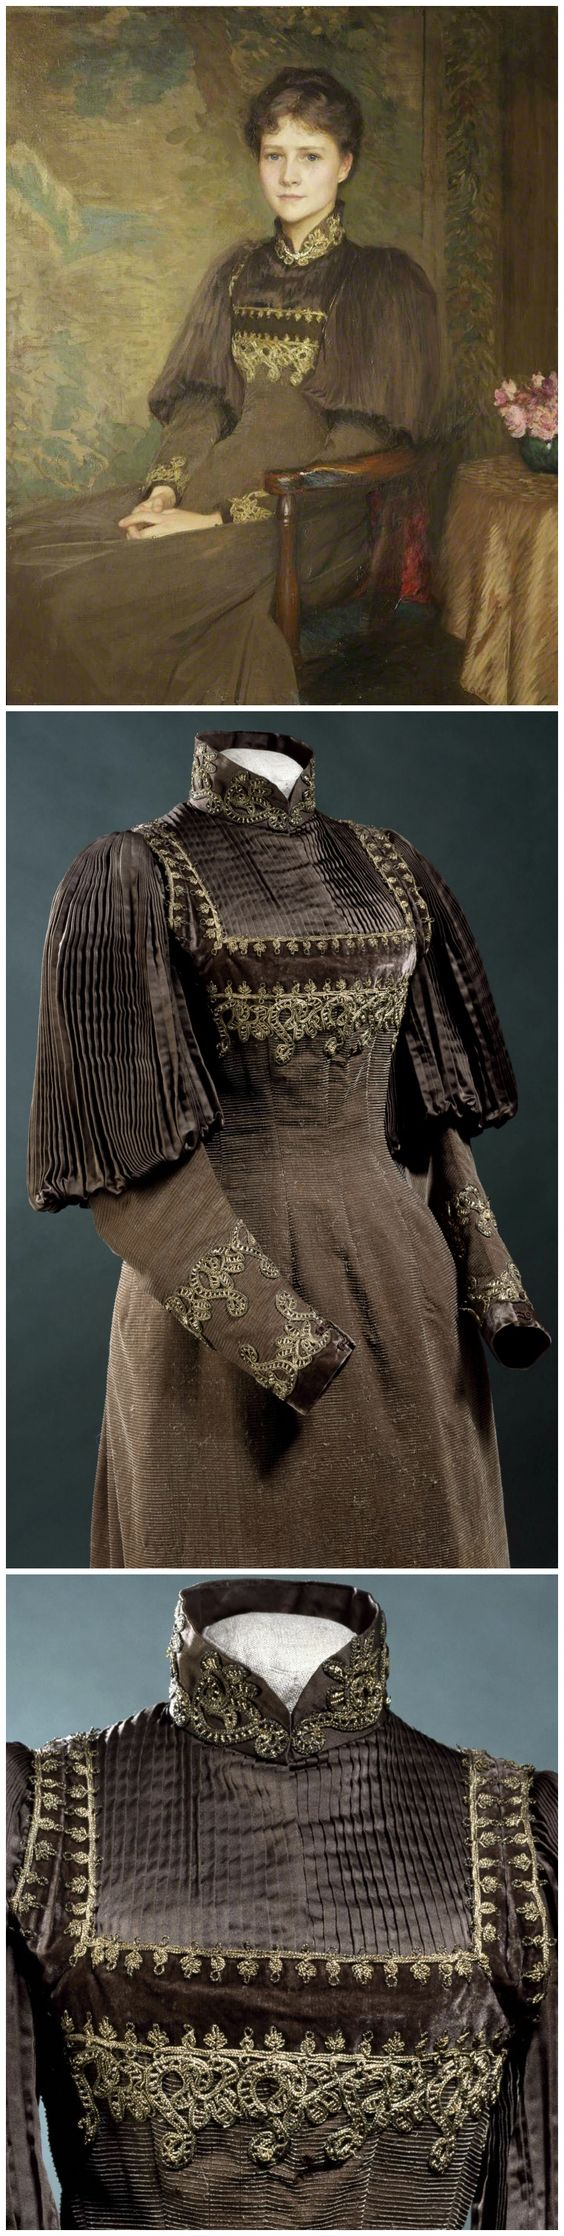 Woman's aesthetic or reform dress and bodice in wool with a ribbed weave, Great Britain, 1892-1895. The dress is a pinafore style, worn over a matching chocolate-brown silk satin bodice with a high braided gilt collar. Photos © Victoria and Albert Museum, London. Mrs Herbert Roberts, Lady Clwyd, is seen wearing the dress, which was probably from her trousseau, in George Clausen's 1894 portrait, now located at Walker Art Gallery, National Museums Liverpool (photo via BBC Your Paintings).: